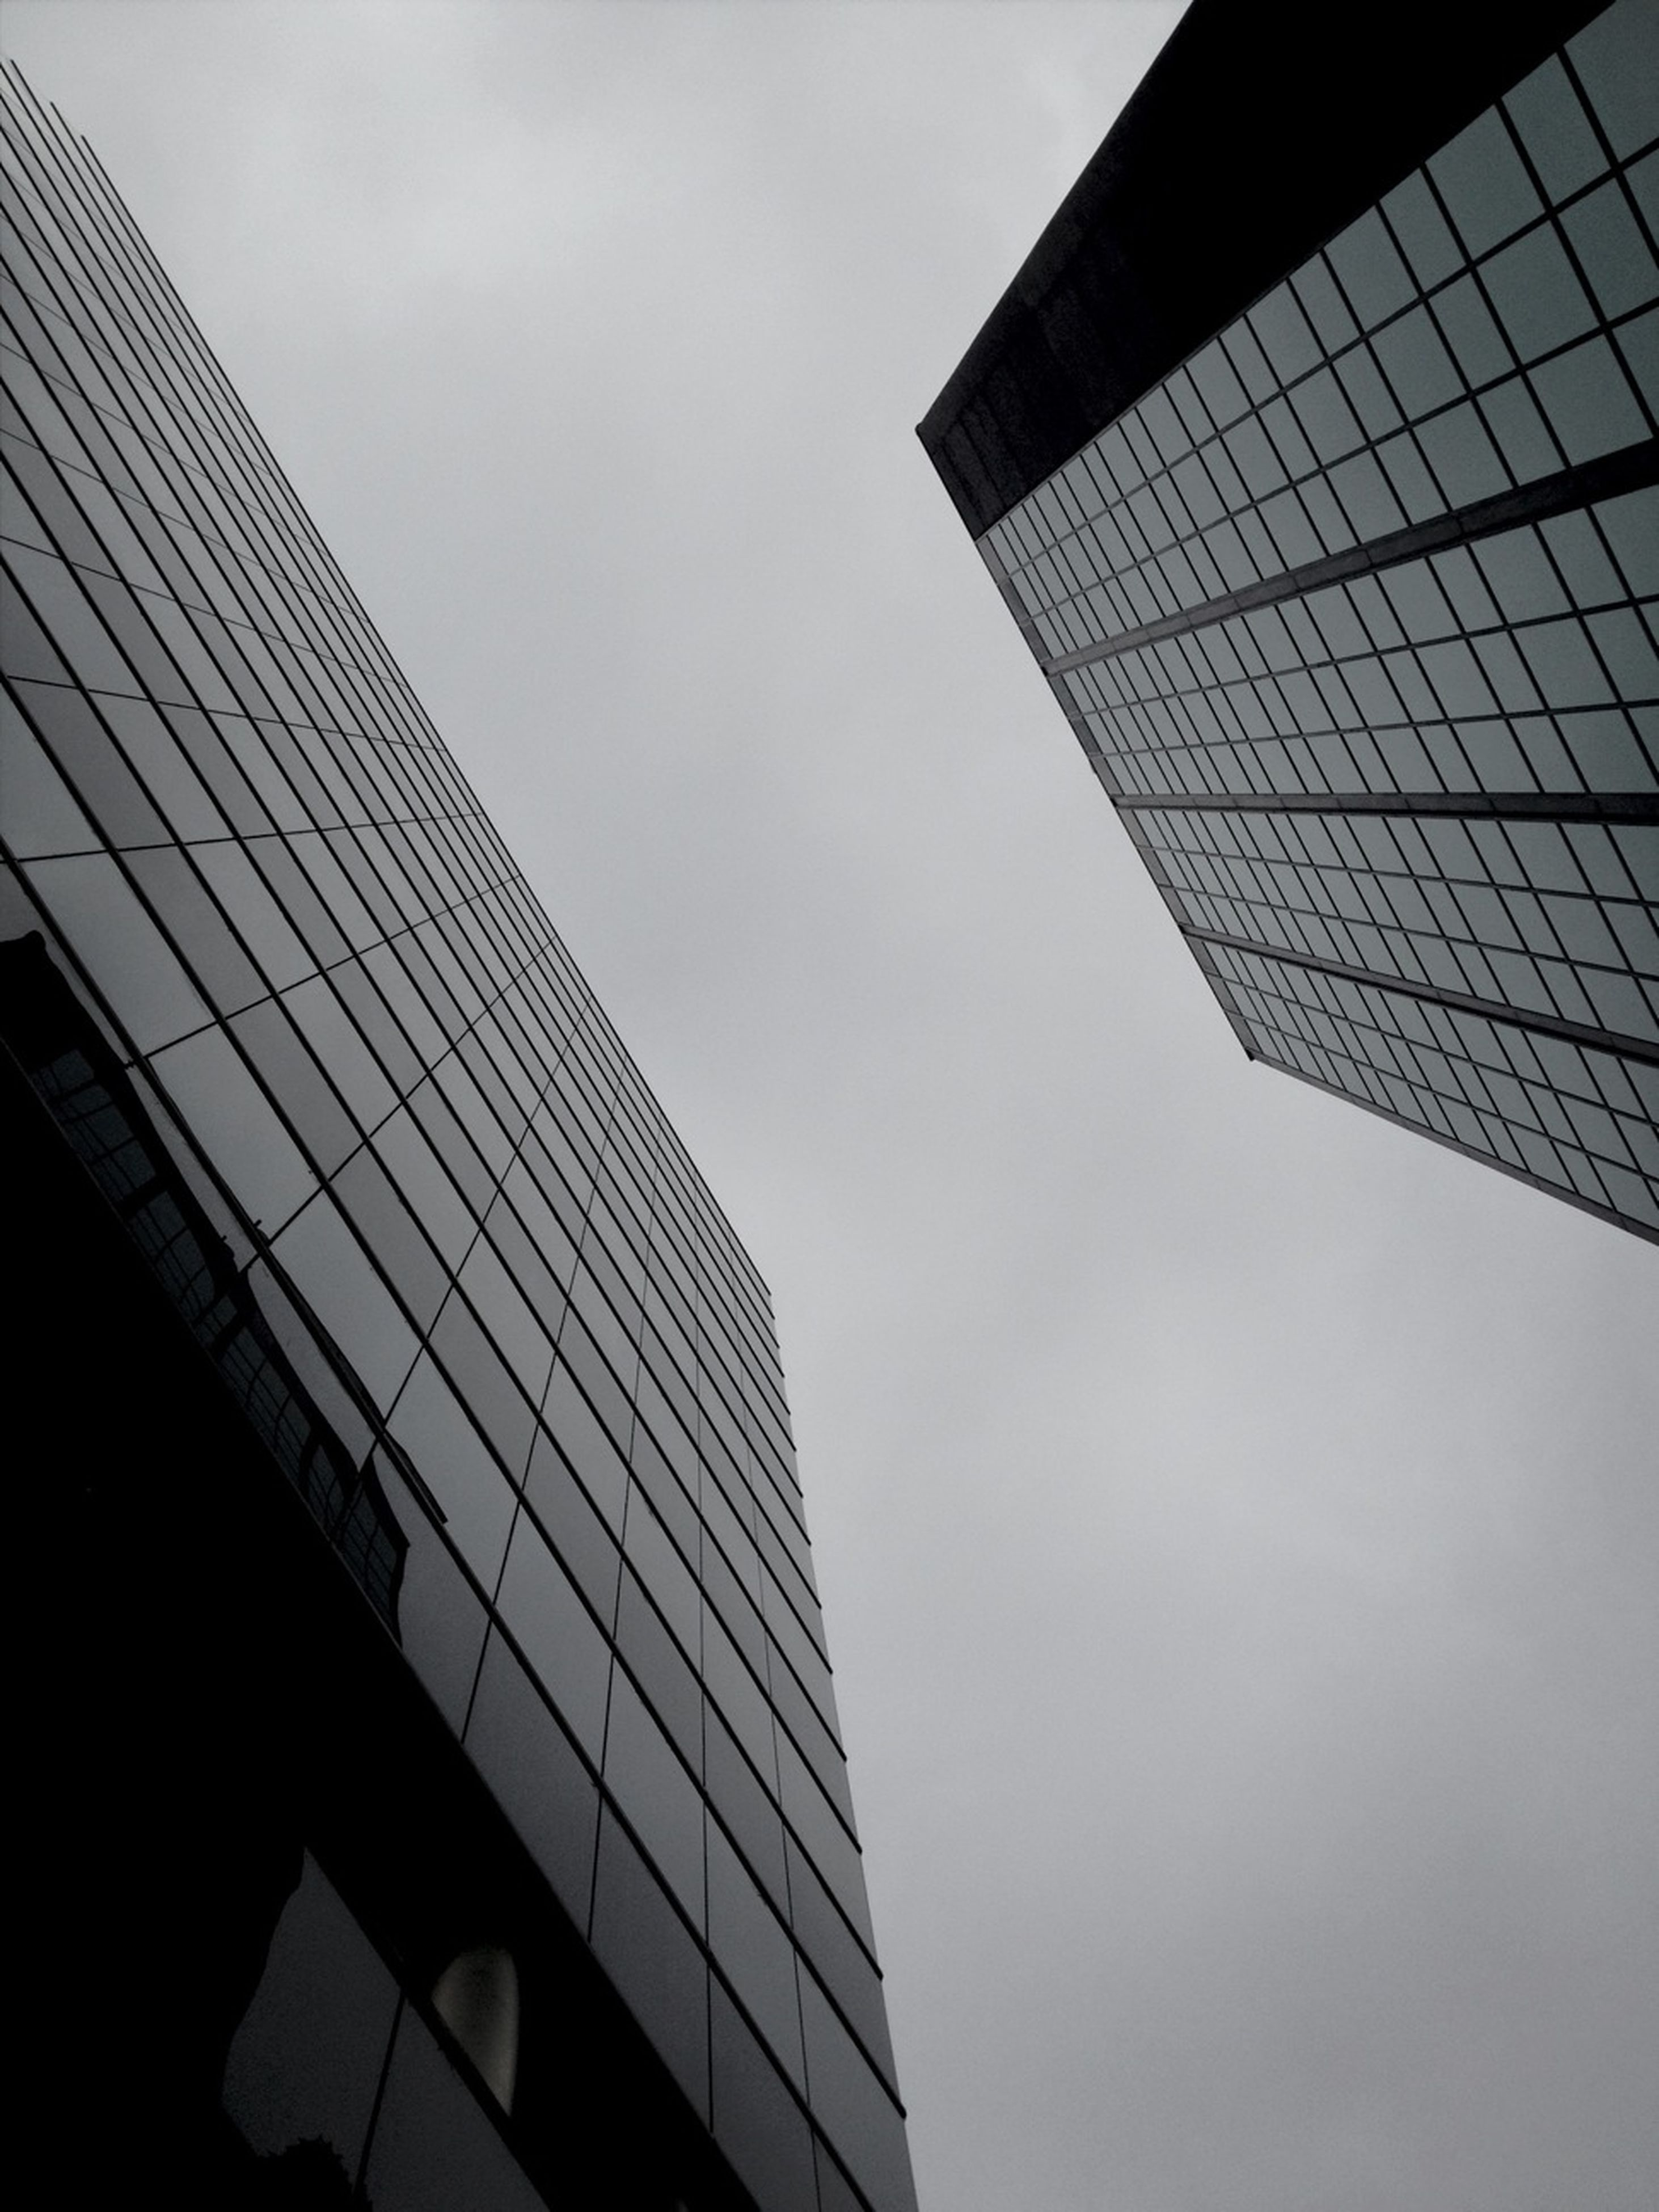 architecture, building exterior, built structure, low angle view, modern, skyscraper, office building, tall - high, city, tower, sky, glass - material, building, reflection, tall, day, capital cities, outdoors, city life, no people